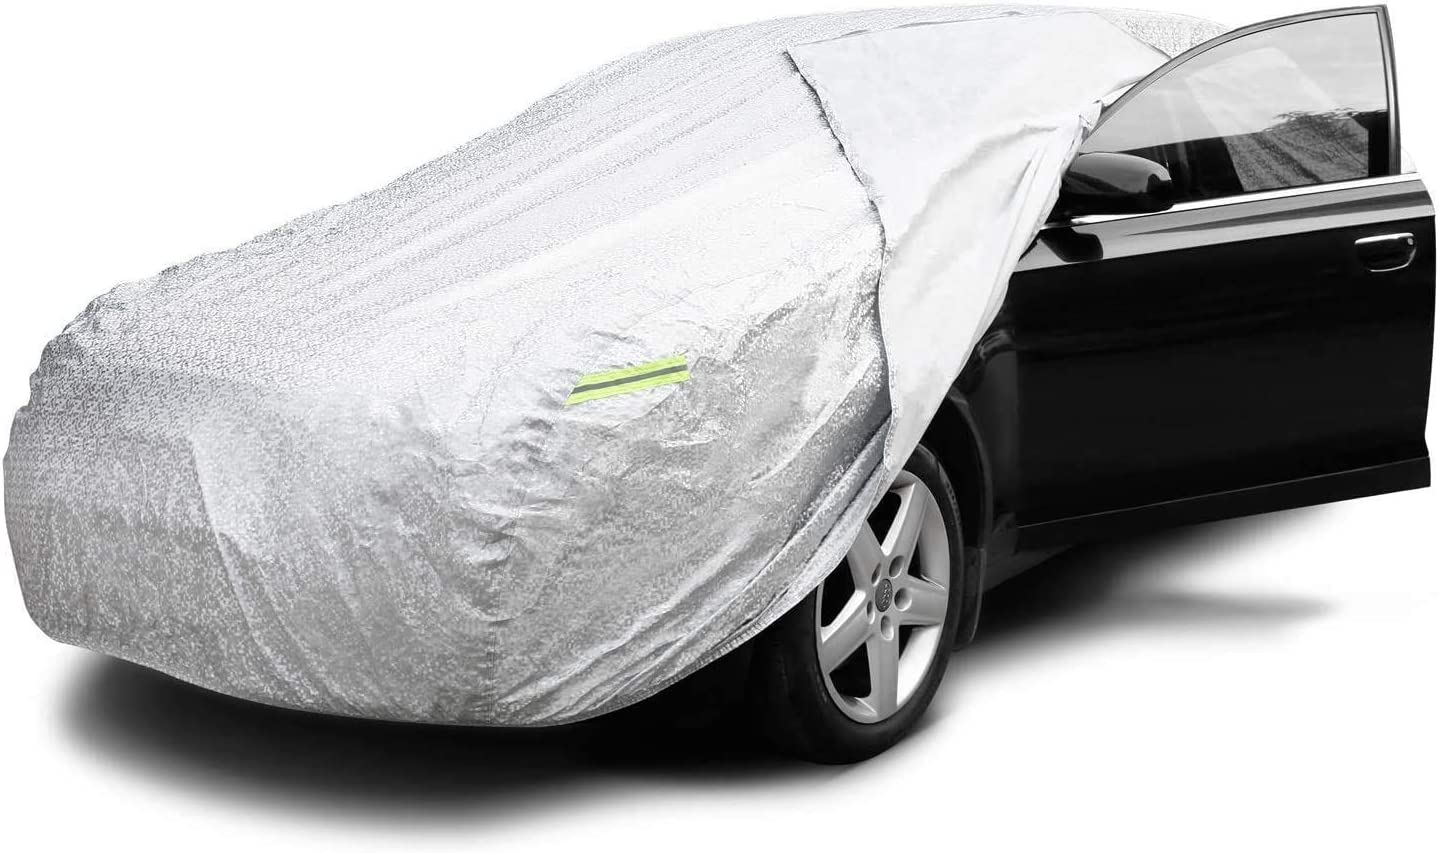 INTEY Car Cover(480 * 175 * 120cm) With side opening Waterproof Breathable Heavy Duty Scratch Proof Cotton Lining Full Car Cover in All Weather